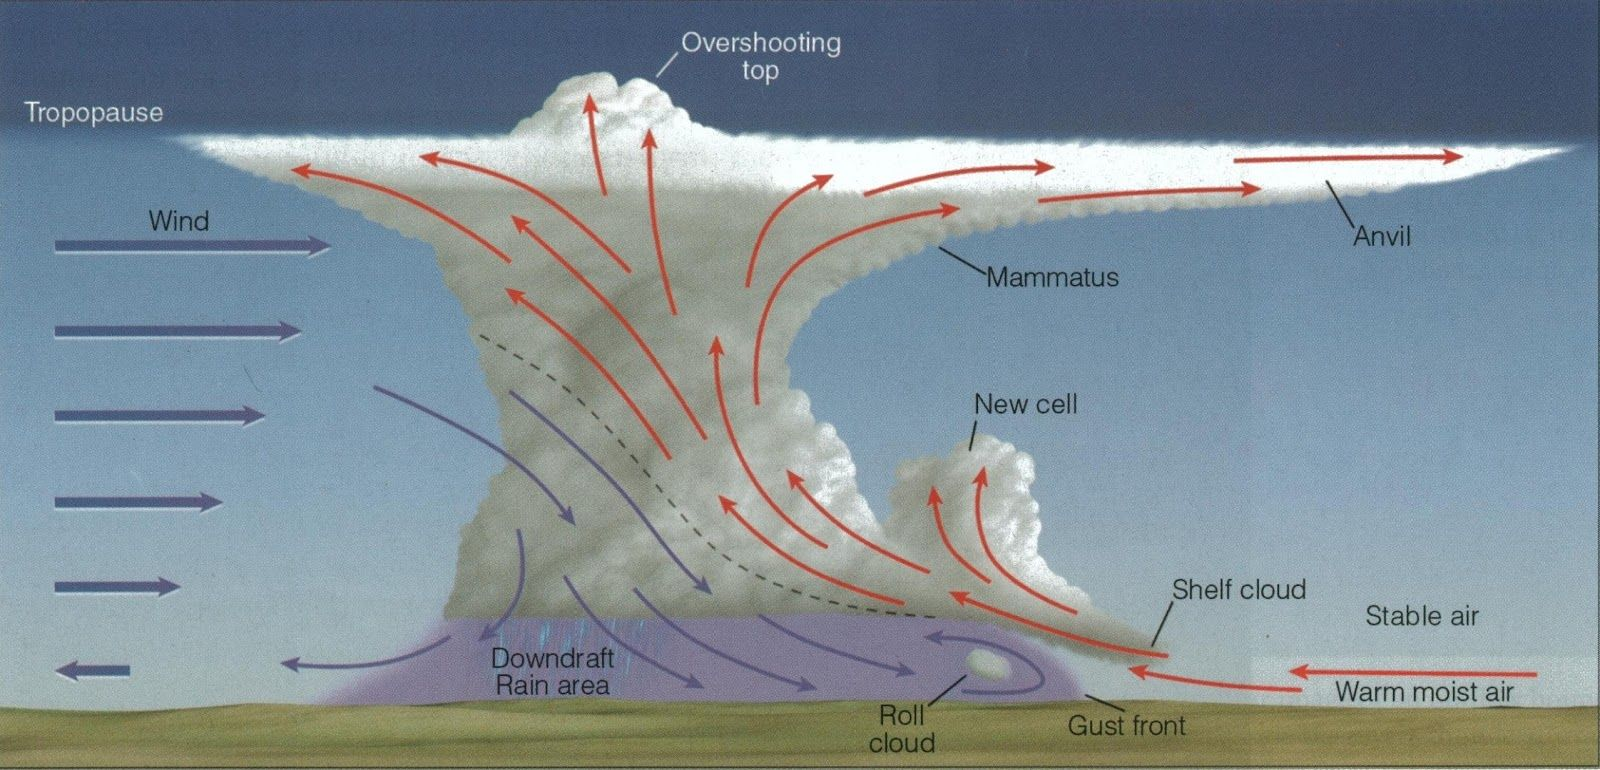 Calm before the storm - etymology, origin and meaning